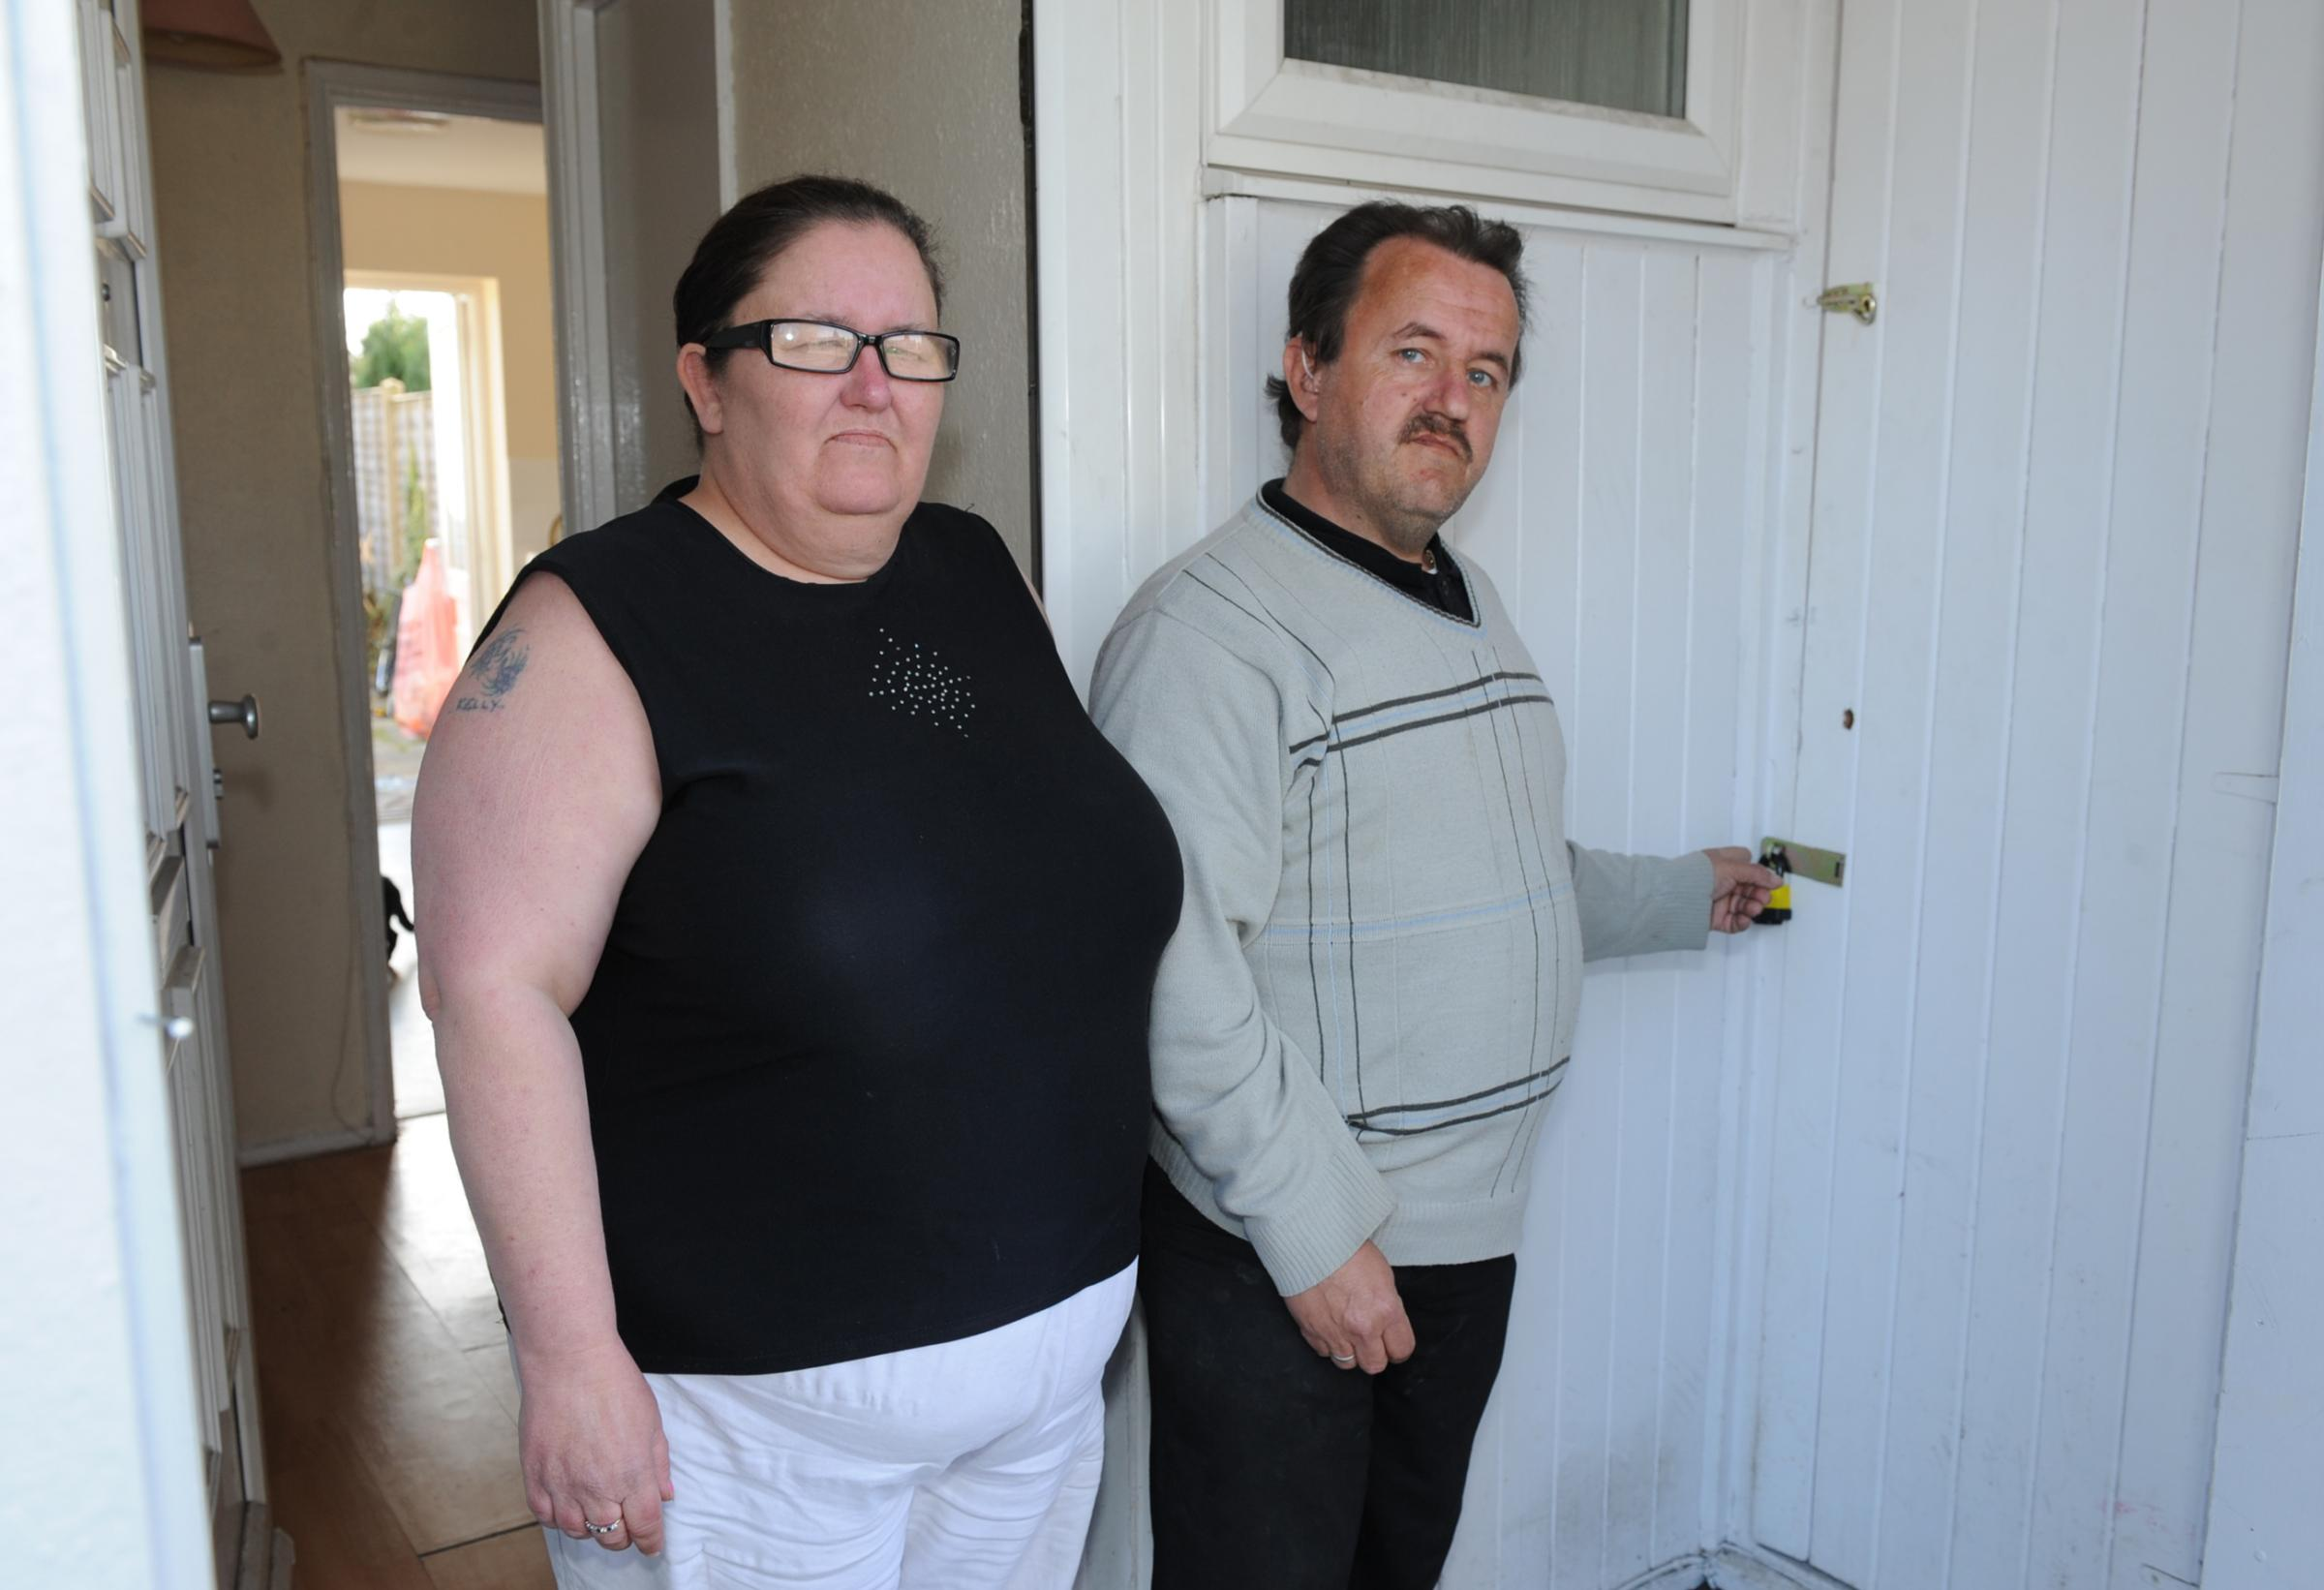 Kelly and George Phillips had their garden shed broken into